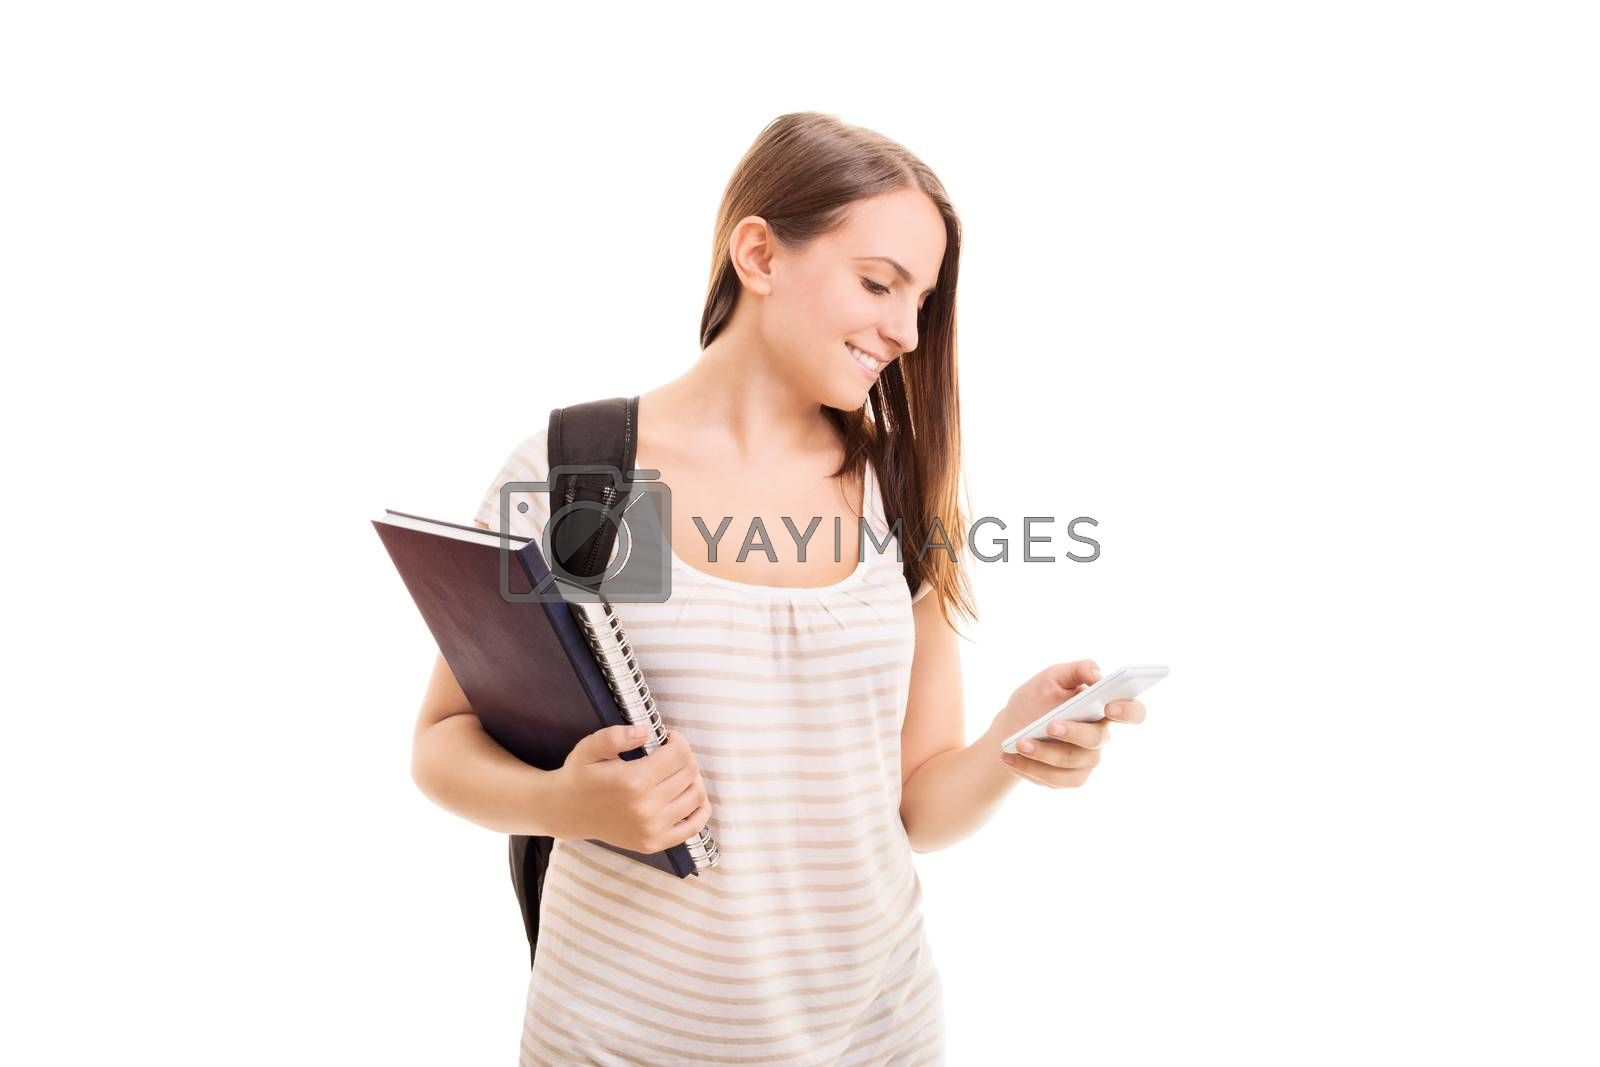 Beautiful young student girl with a backpack, holding notebooks, smiling and looking at her phone, isolated on white background.